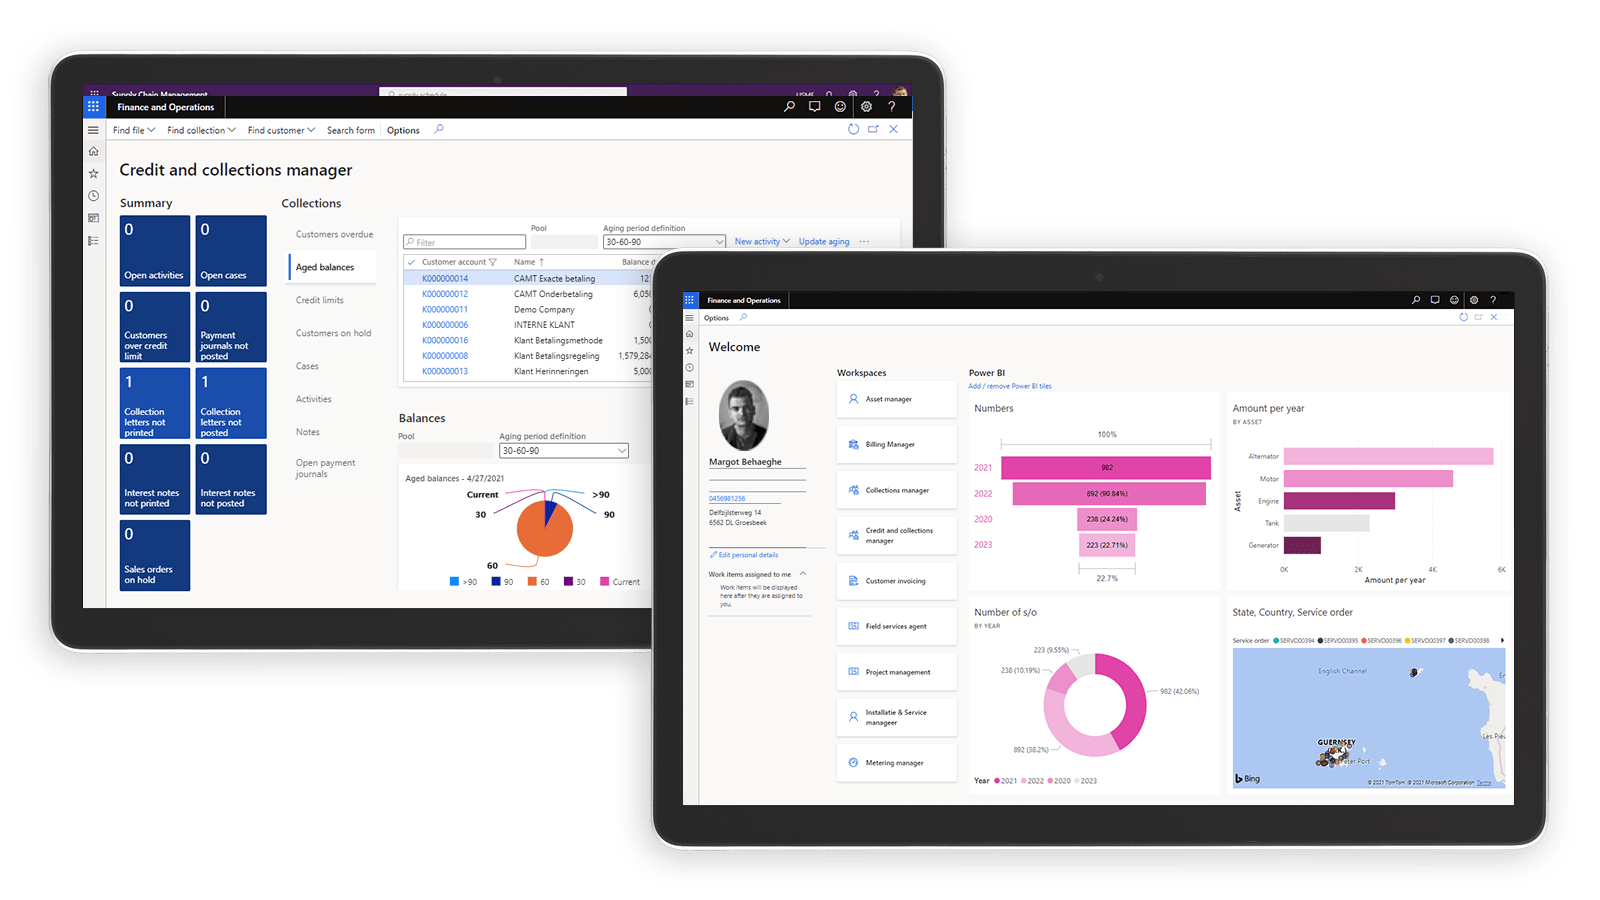 UMAX - CRM and ERP Solution for Utilities built on Microsoft Dynamics 365